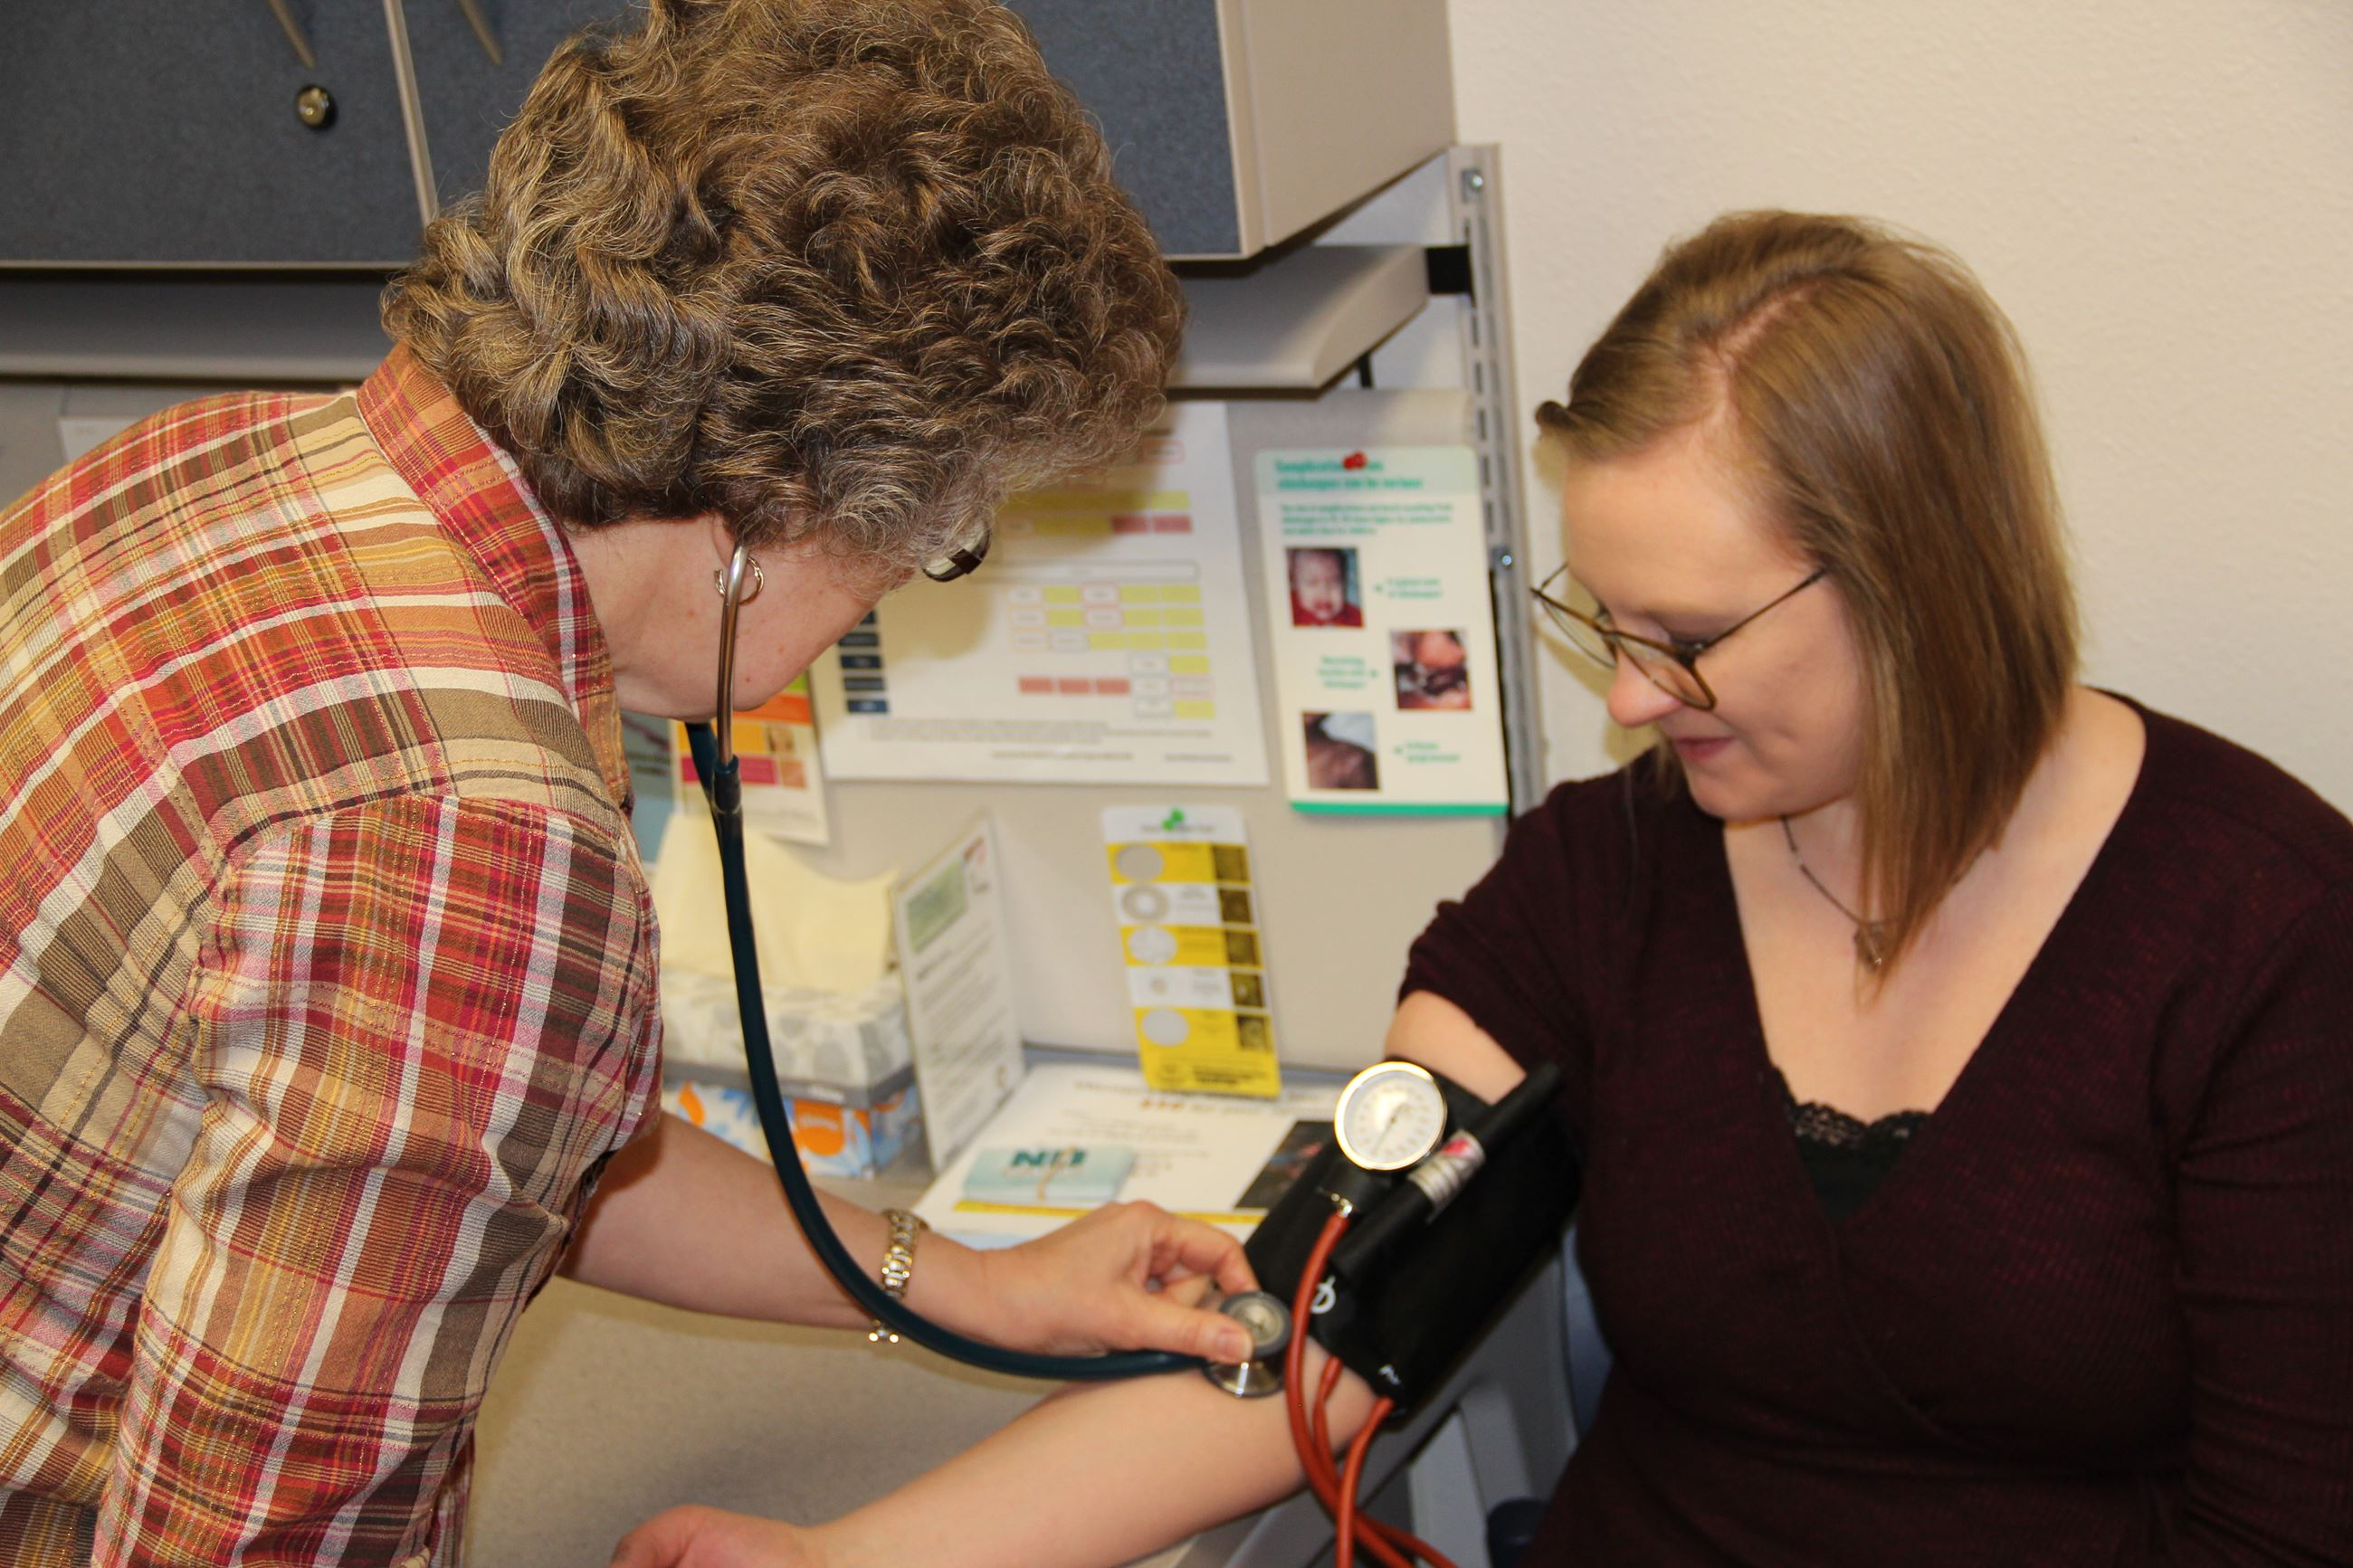 Nurse checking woman's blood pressure JPEG